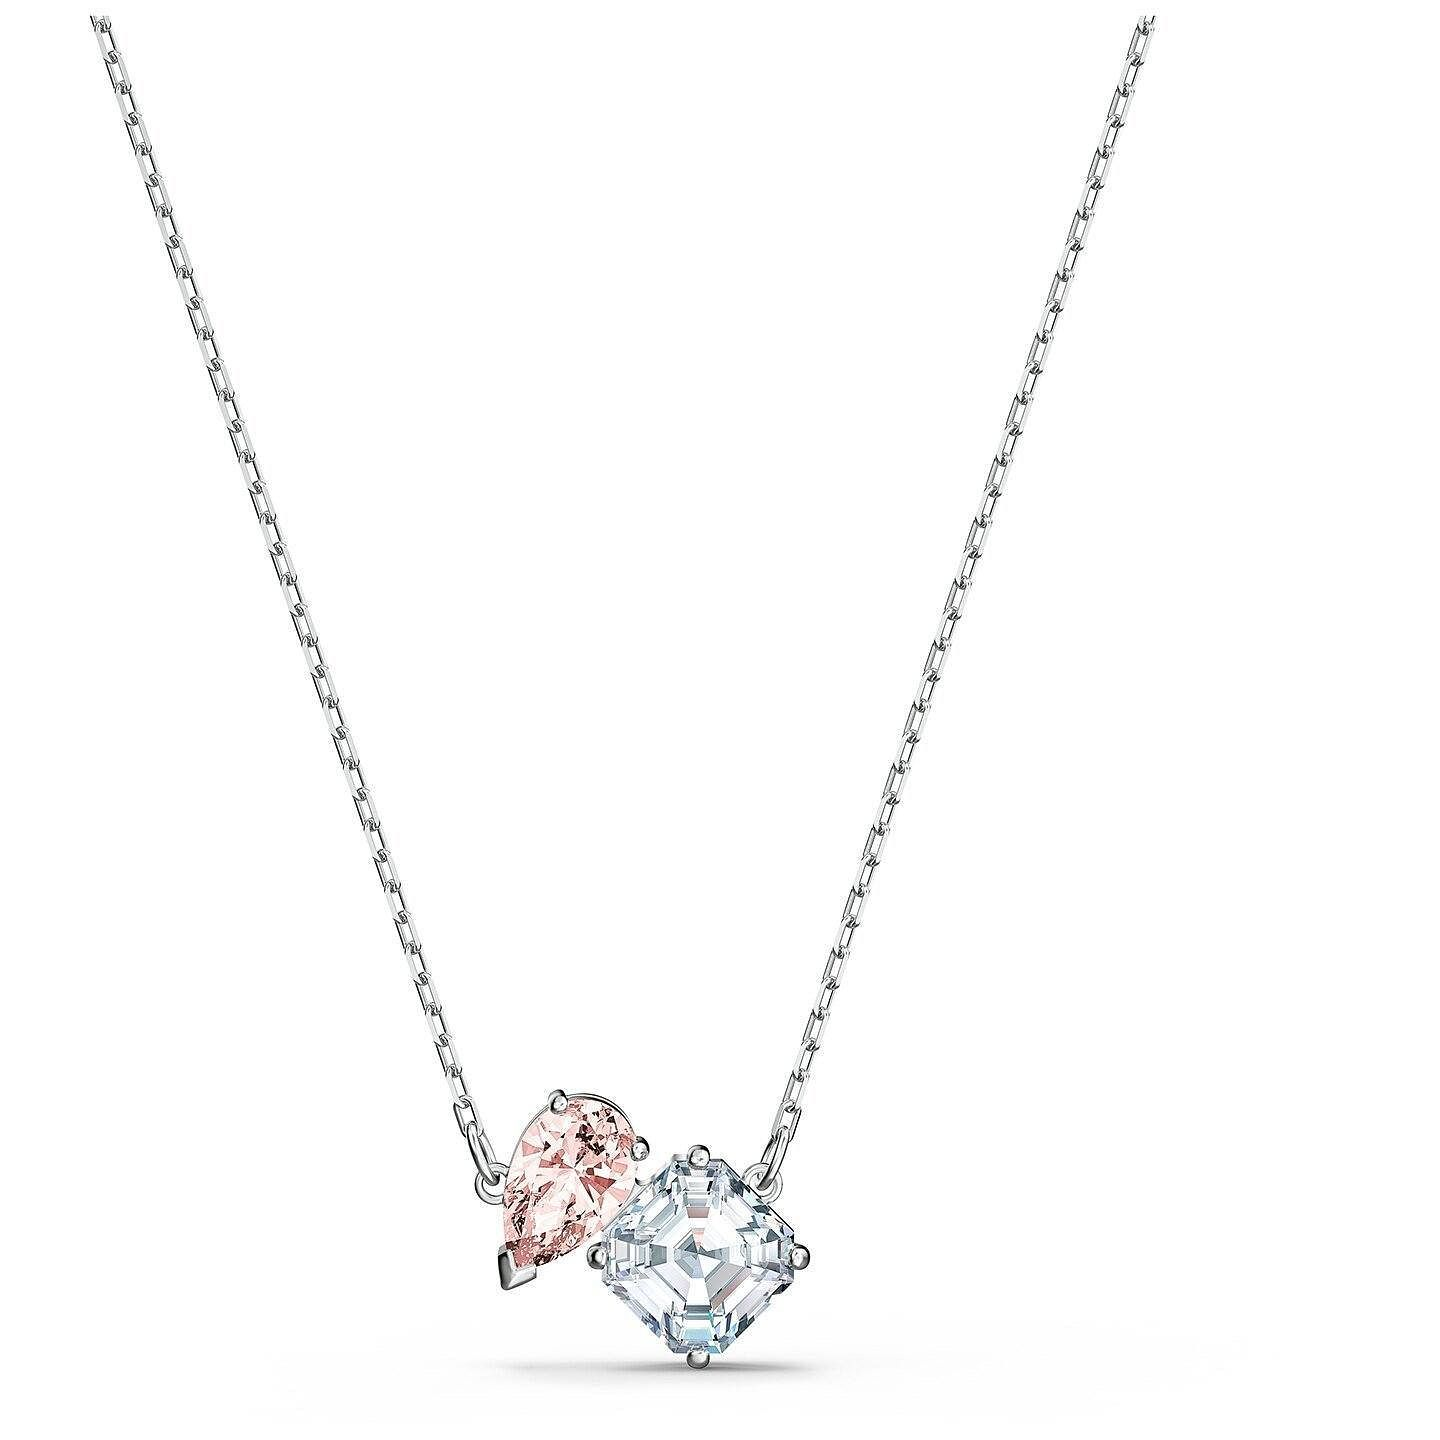 Swarovski Attract Soulmates Rhodium Plated Crystal Necklace - Product number 4128079